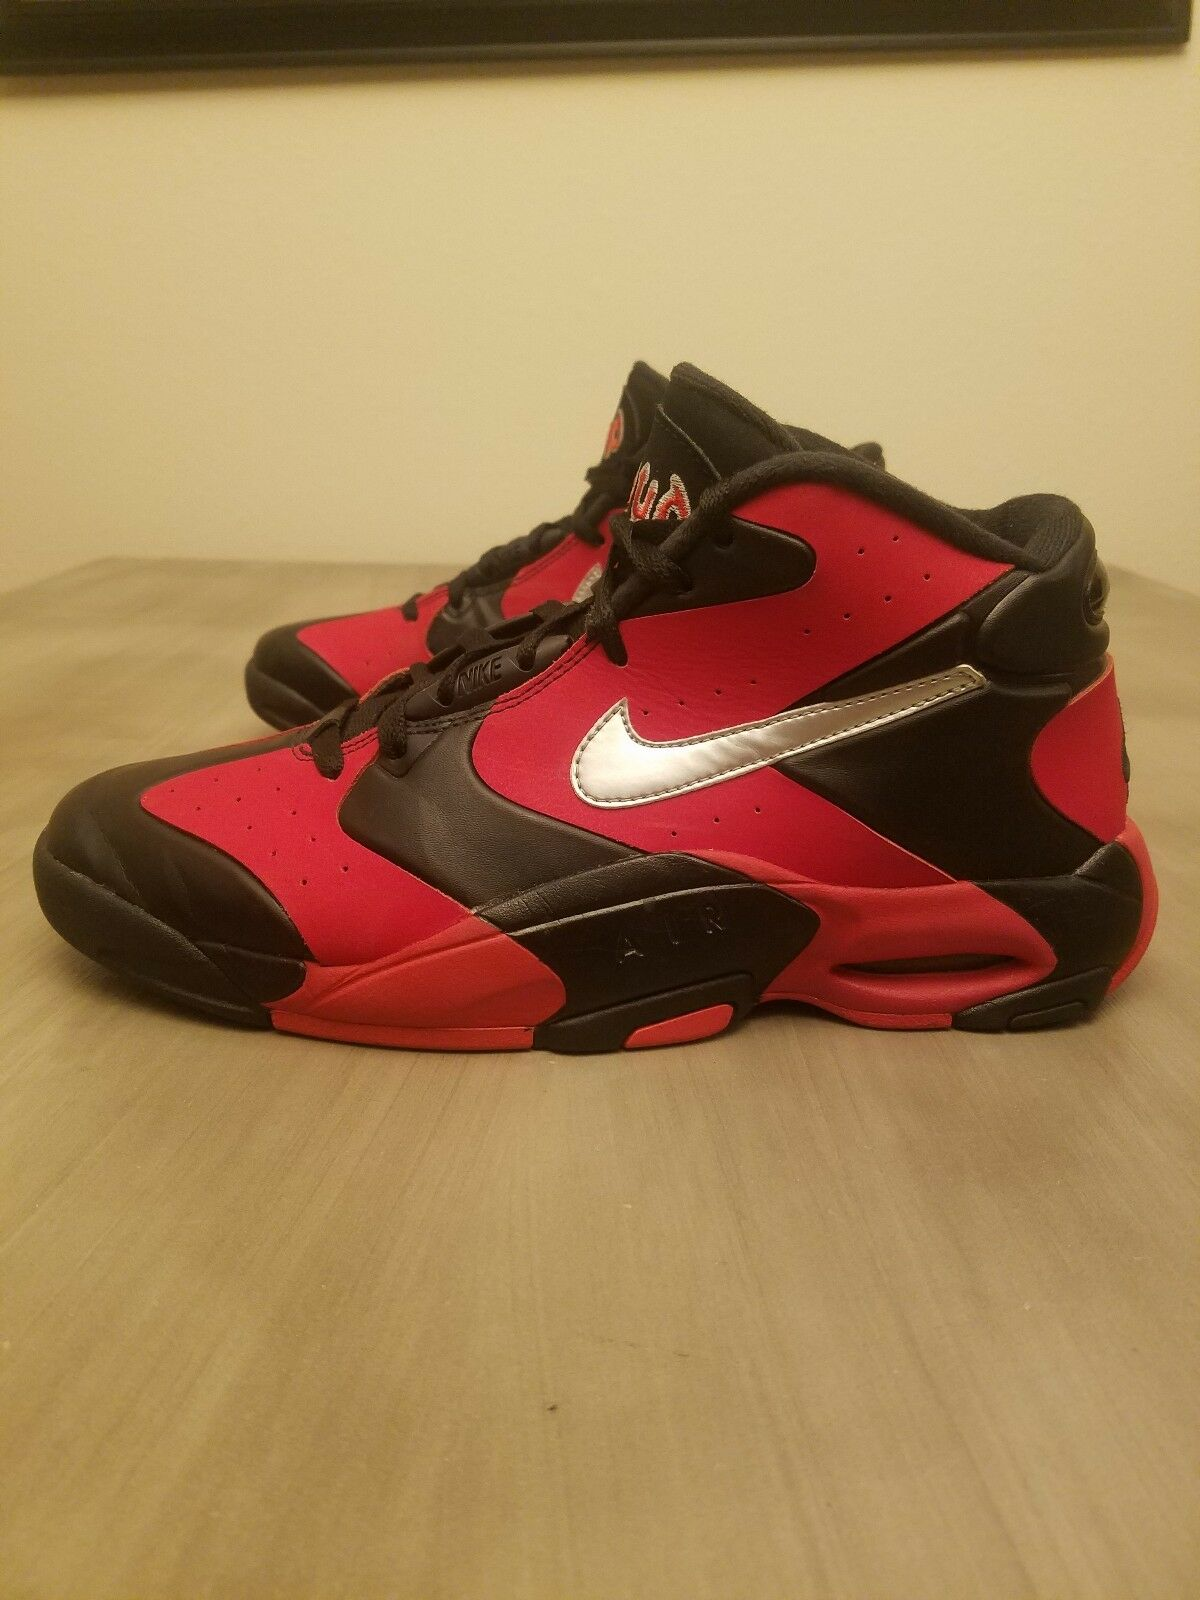 Nike Air up Anfernee Penny Max 1 Rouge 90 95 zoom vol 270 180 2 force 97 98